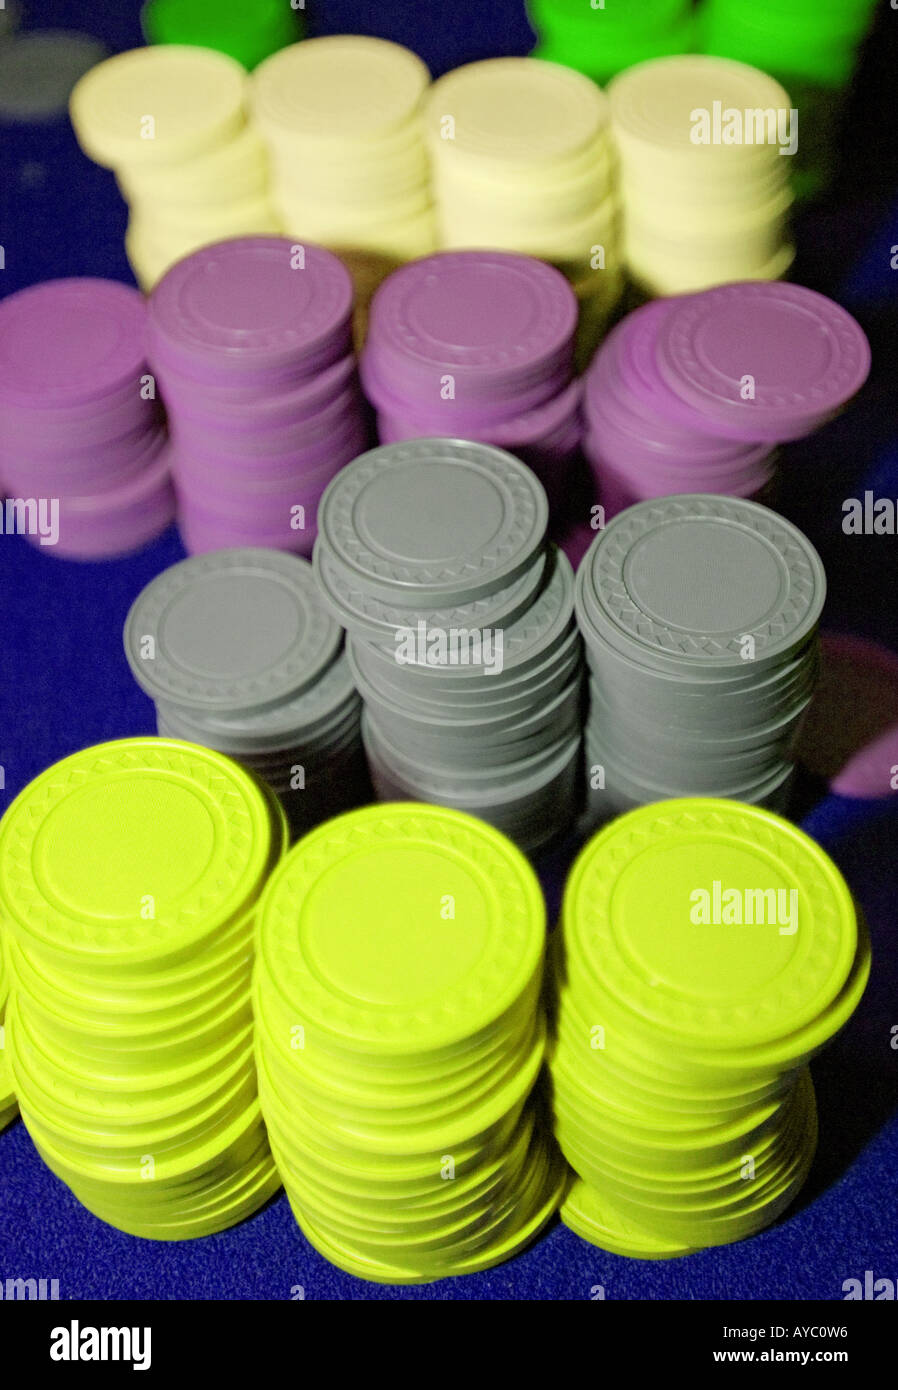 Stacks of poker chips - Stock Image